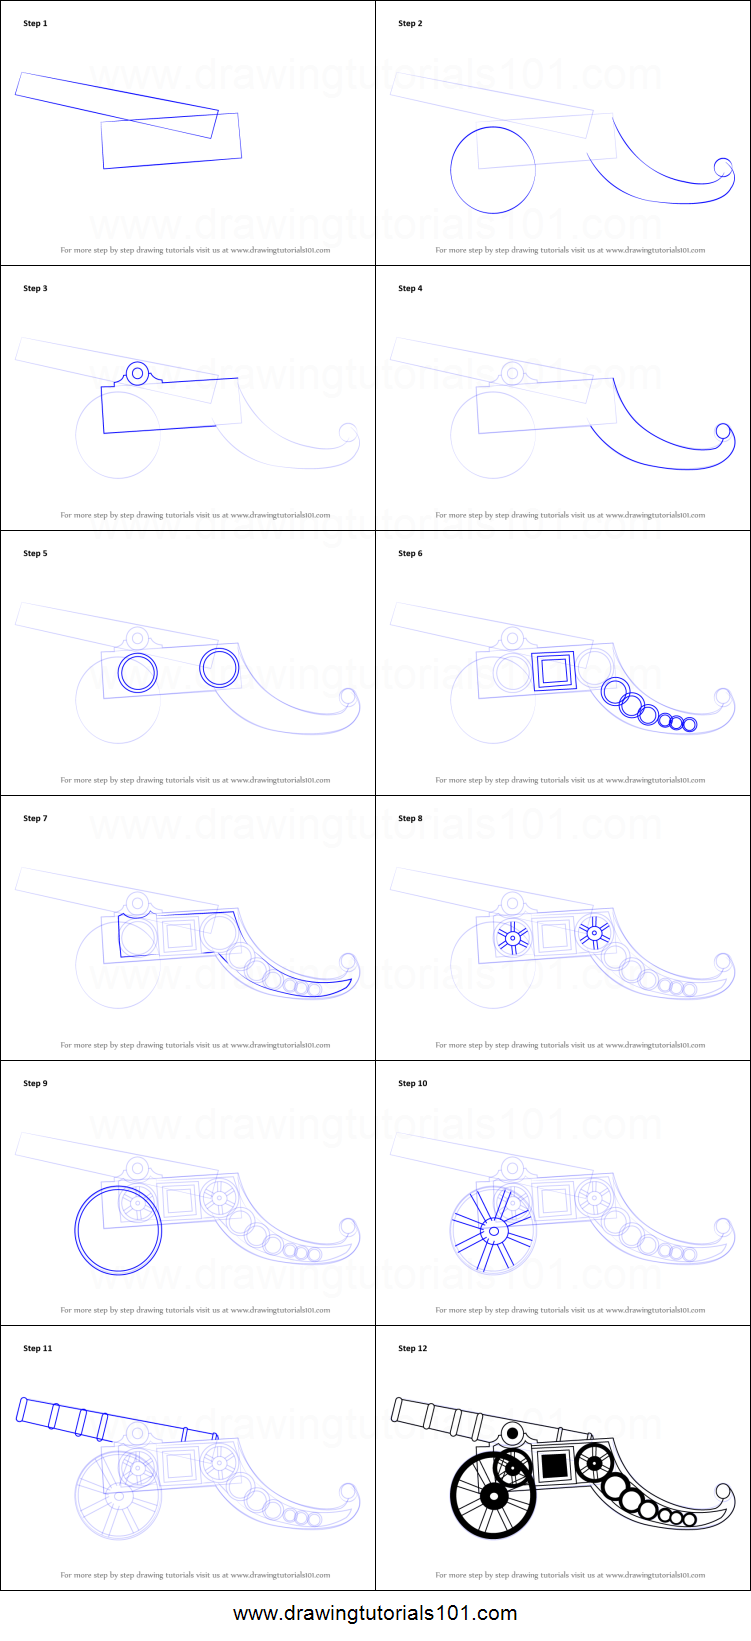 How To Draw A Vintage Cannon Printable Step By Step